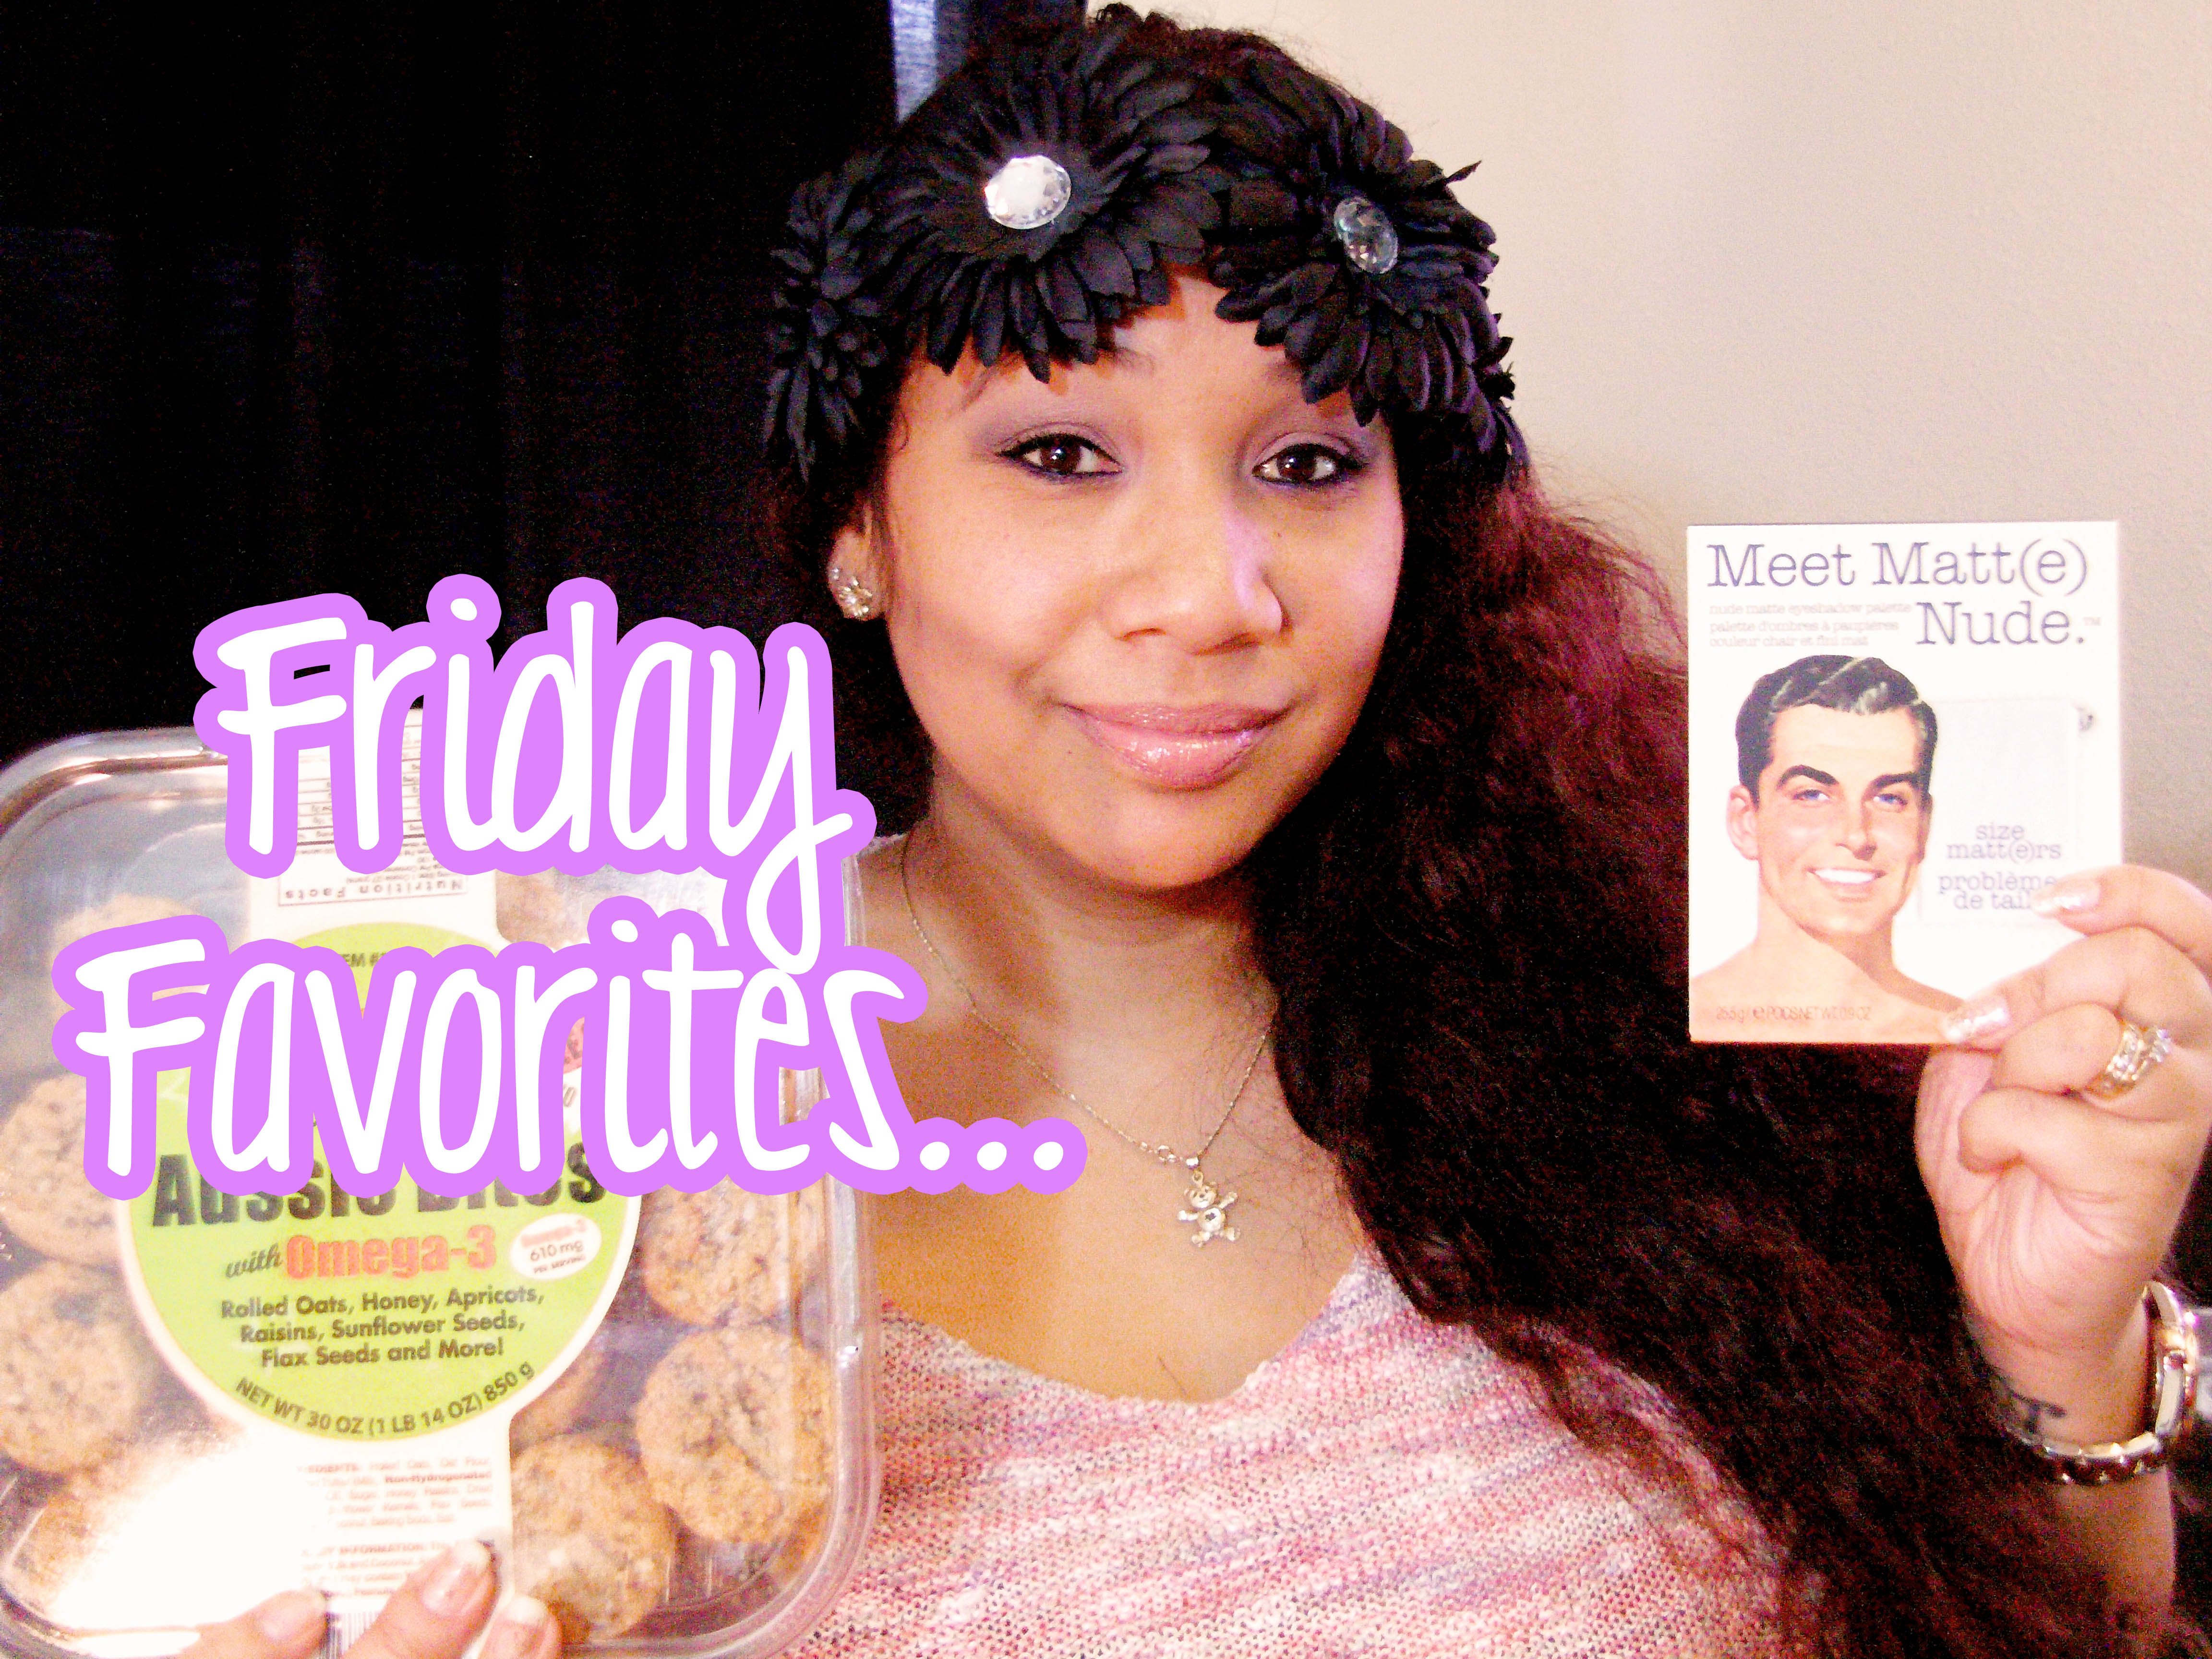 Friday favorites oh yay chit chat cosmetic goodies at